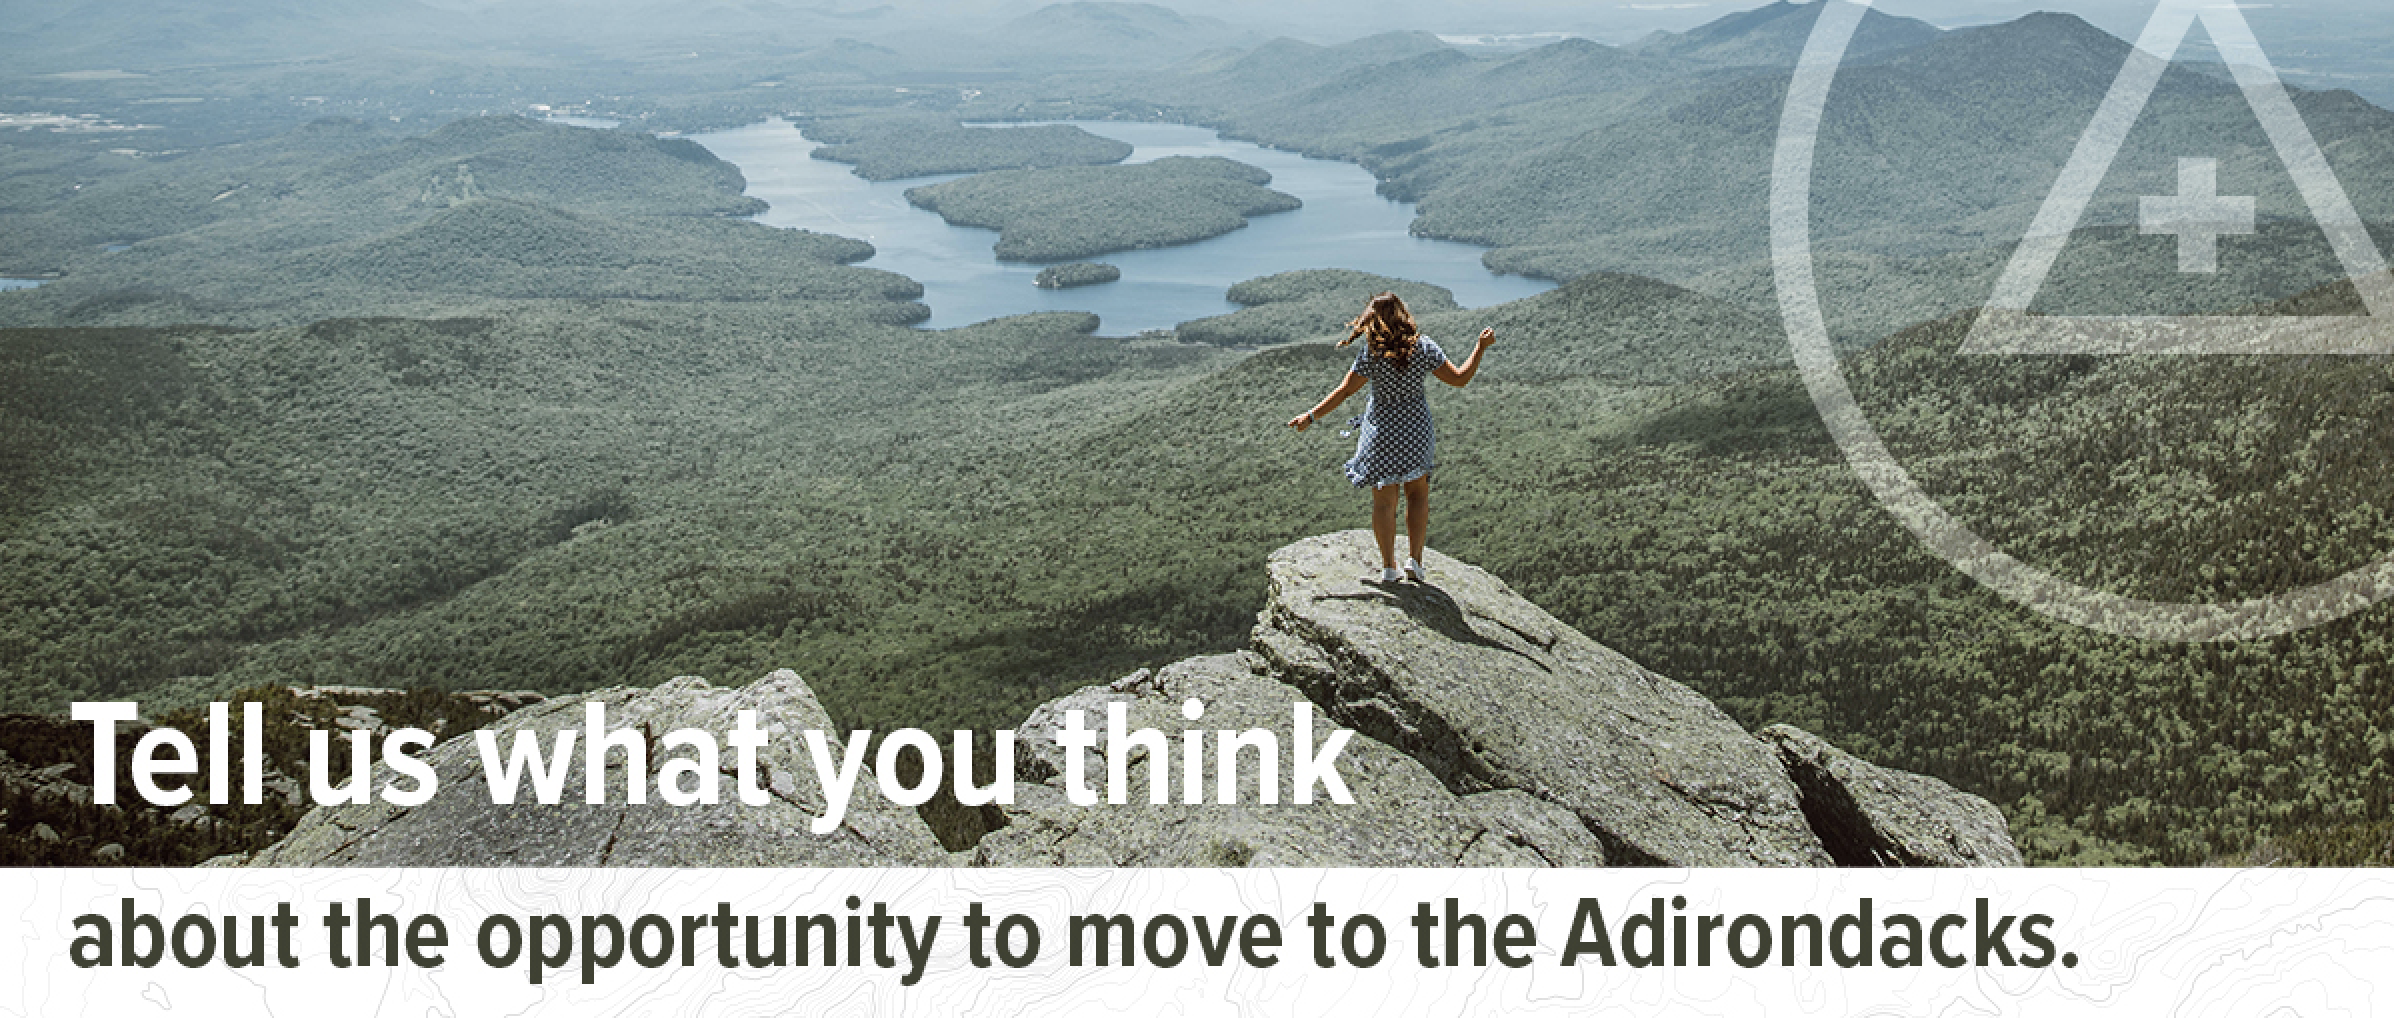 "Girl on mountain peak with text ""tell us what you think about the opportunity to move to the Adirondacks"""